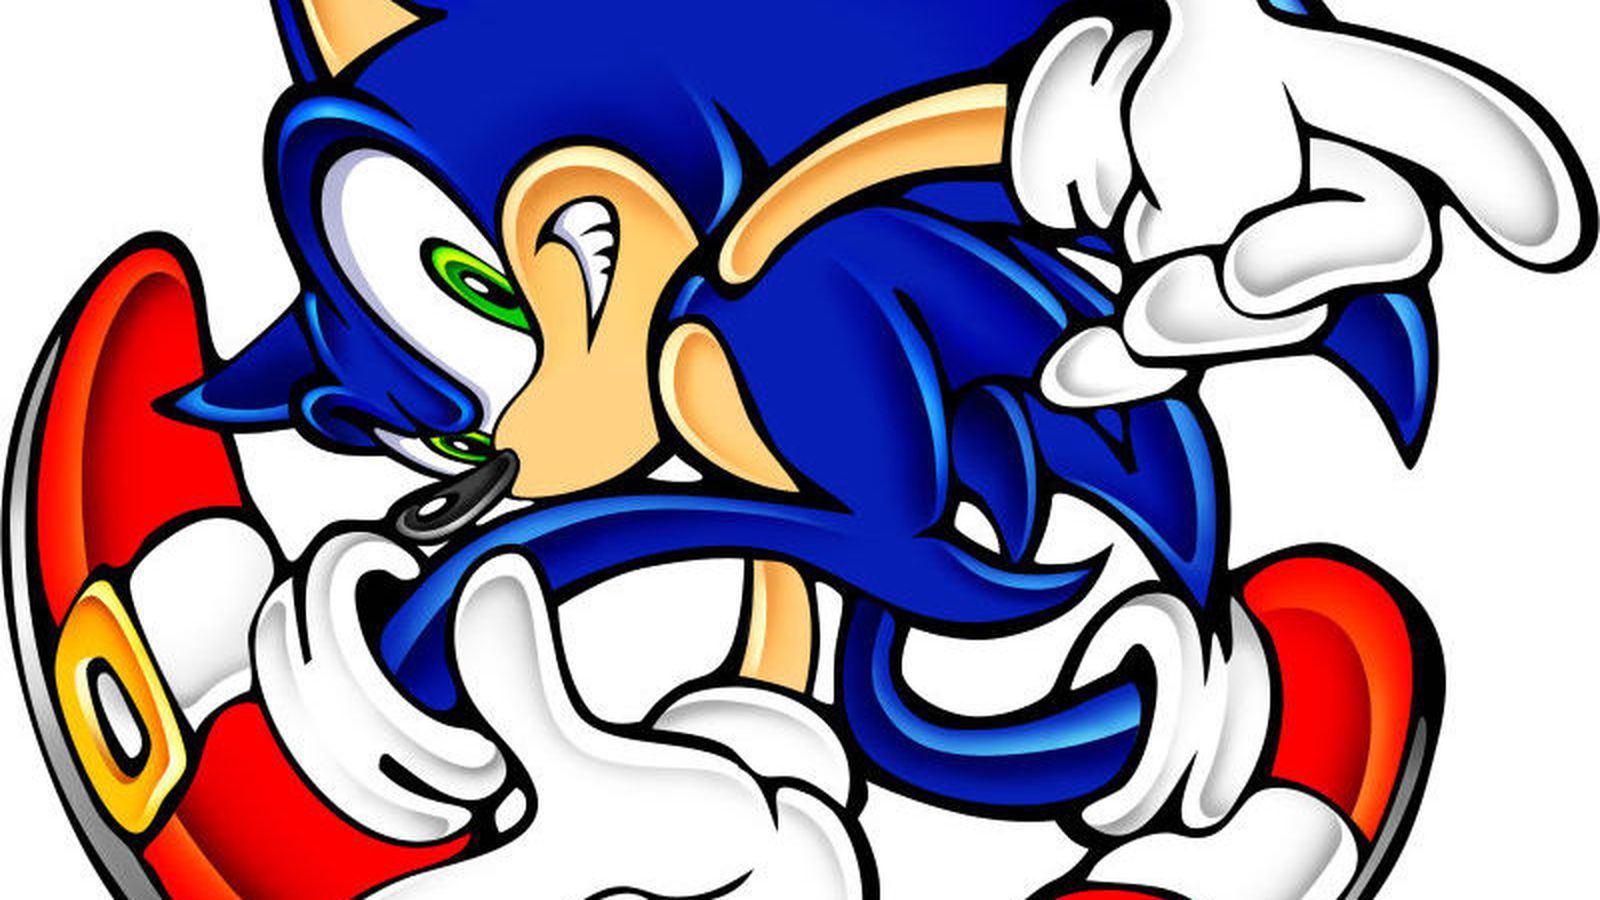 Gambar Kartun Sonic Knuckles: How Sega Moved Sonic From 2D To 3D